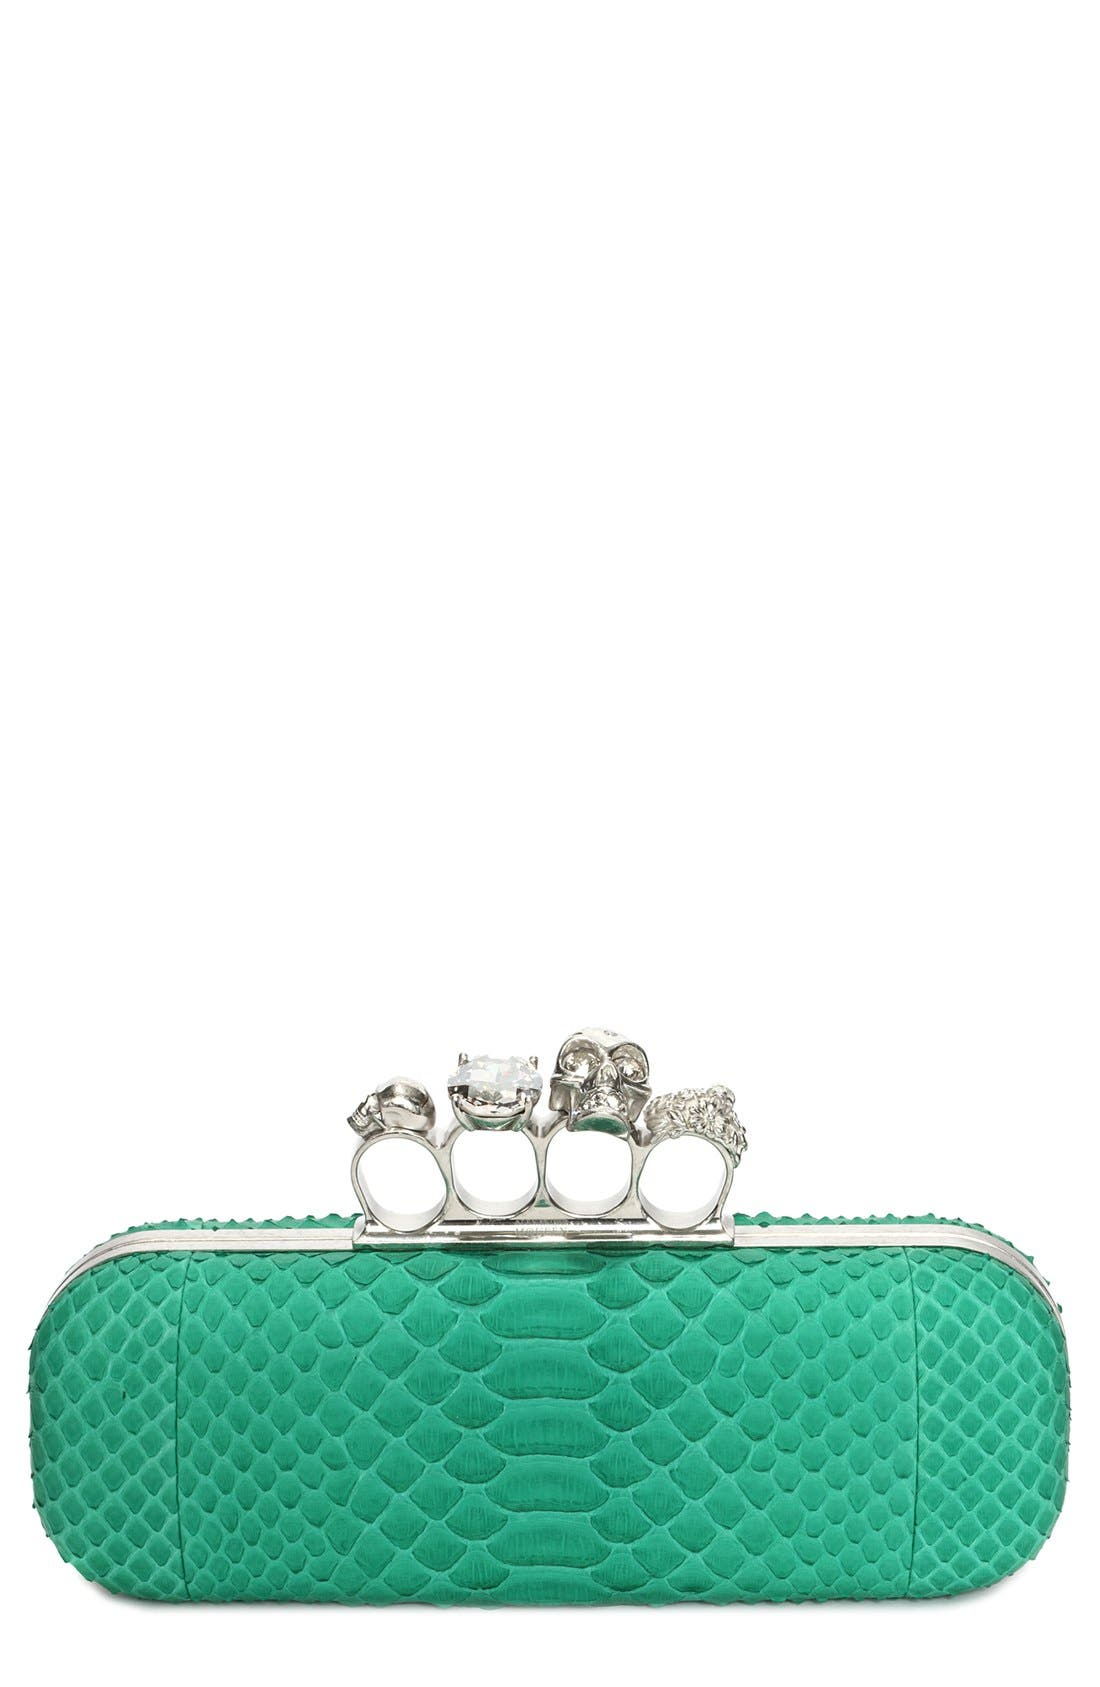 Alternate Image 1 Selected - Alexander McQueen Knuckle Clasp Genuine Python Clutch